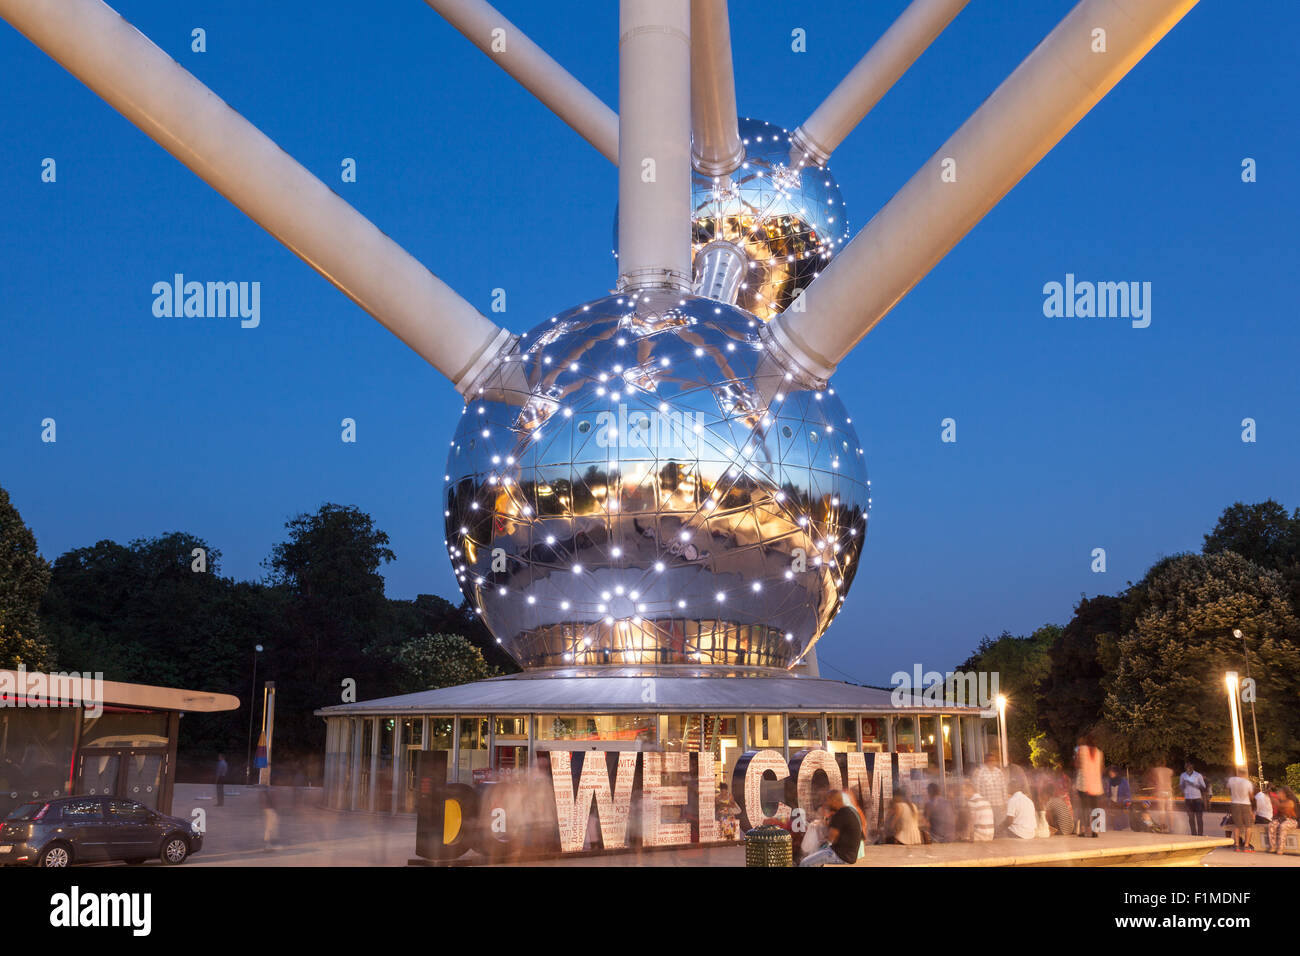 The Atomium in Brussels, Belgium - Stock Image